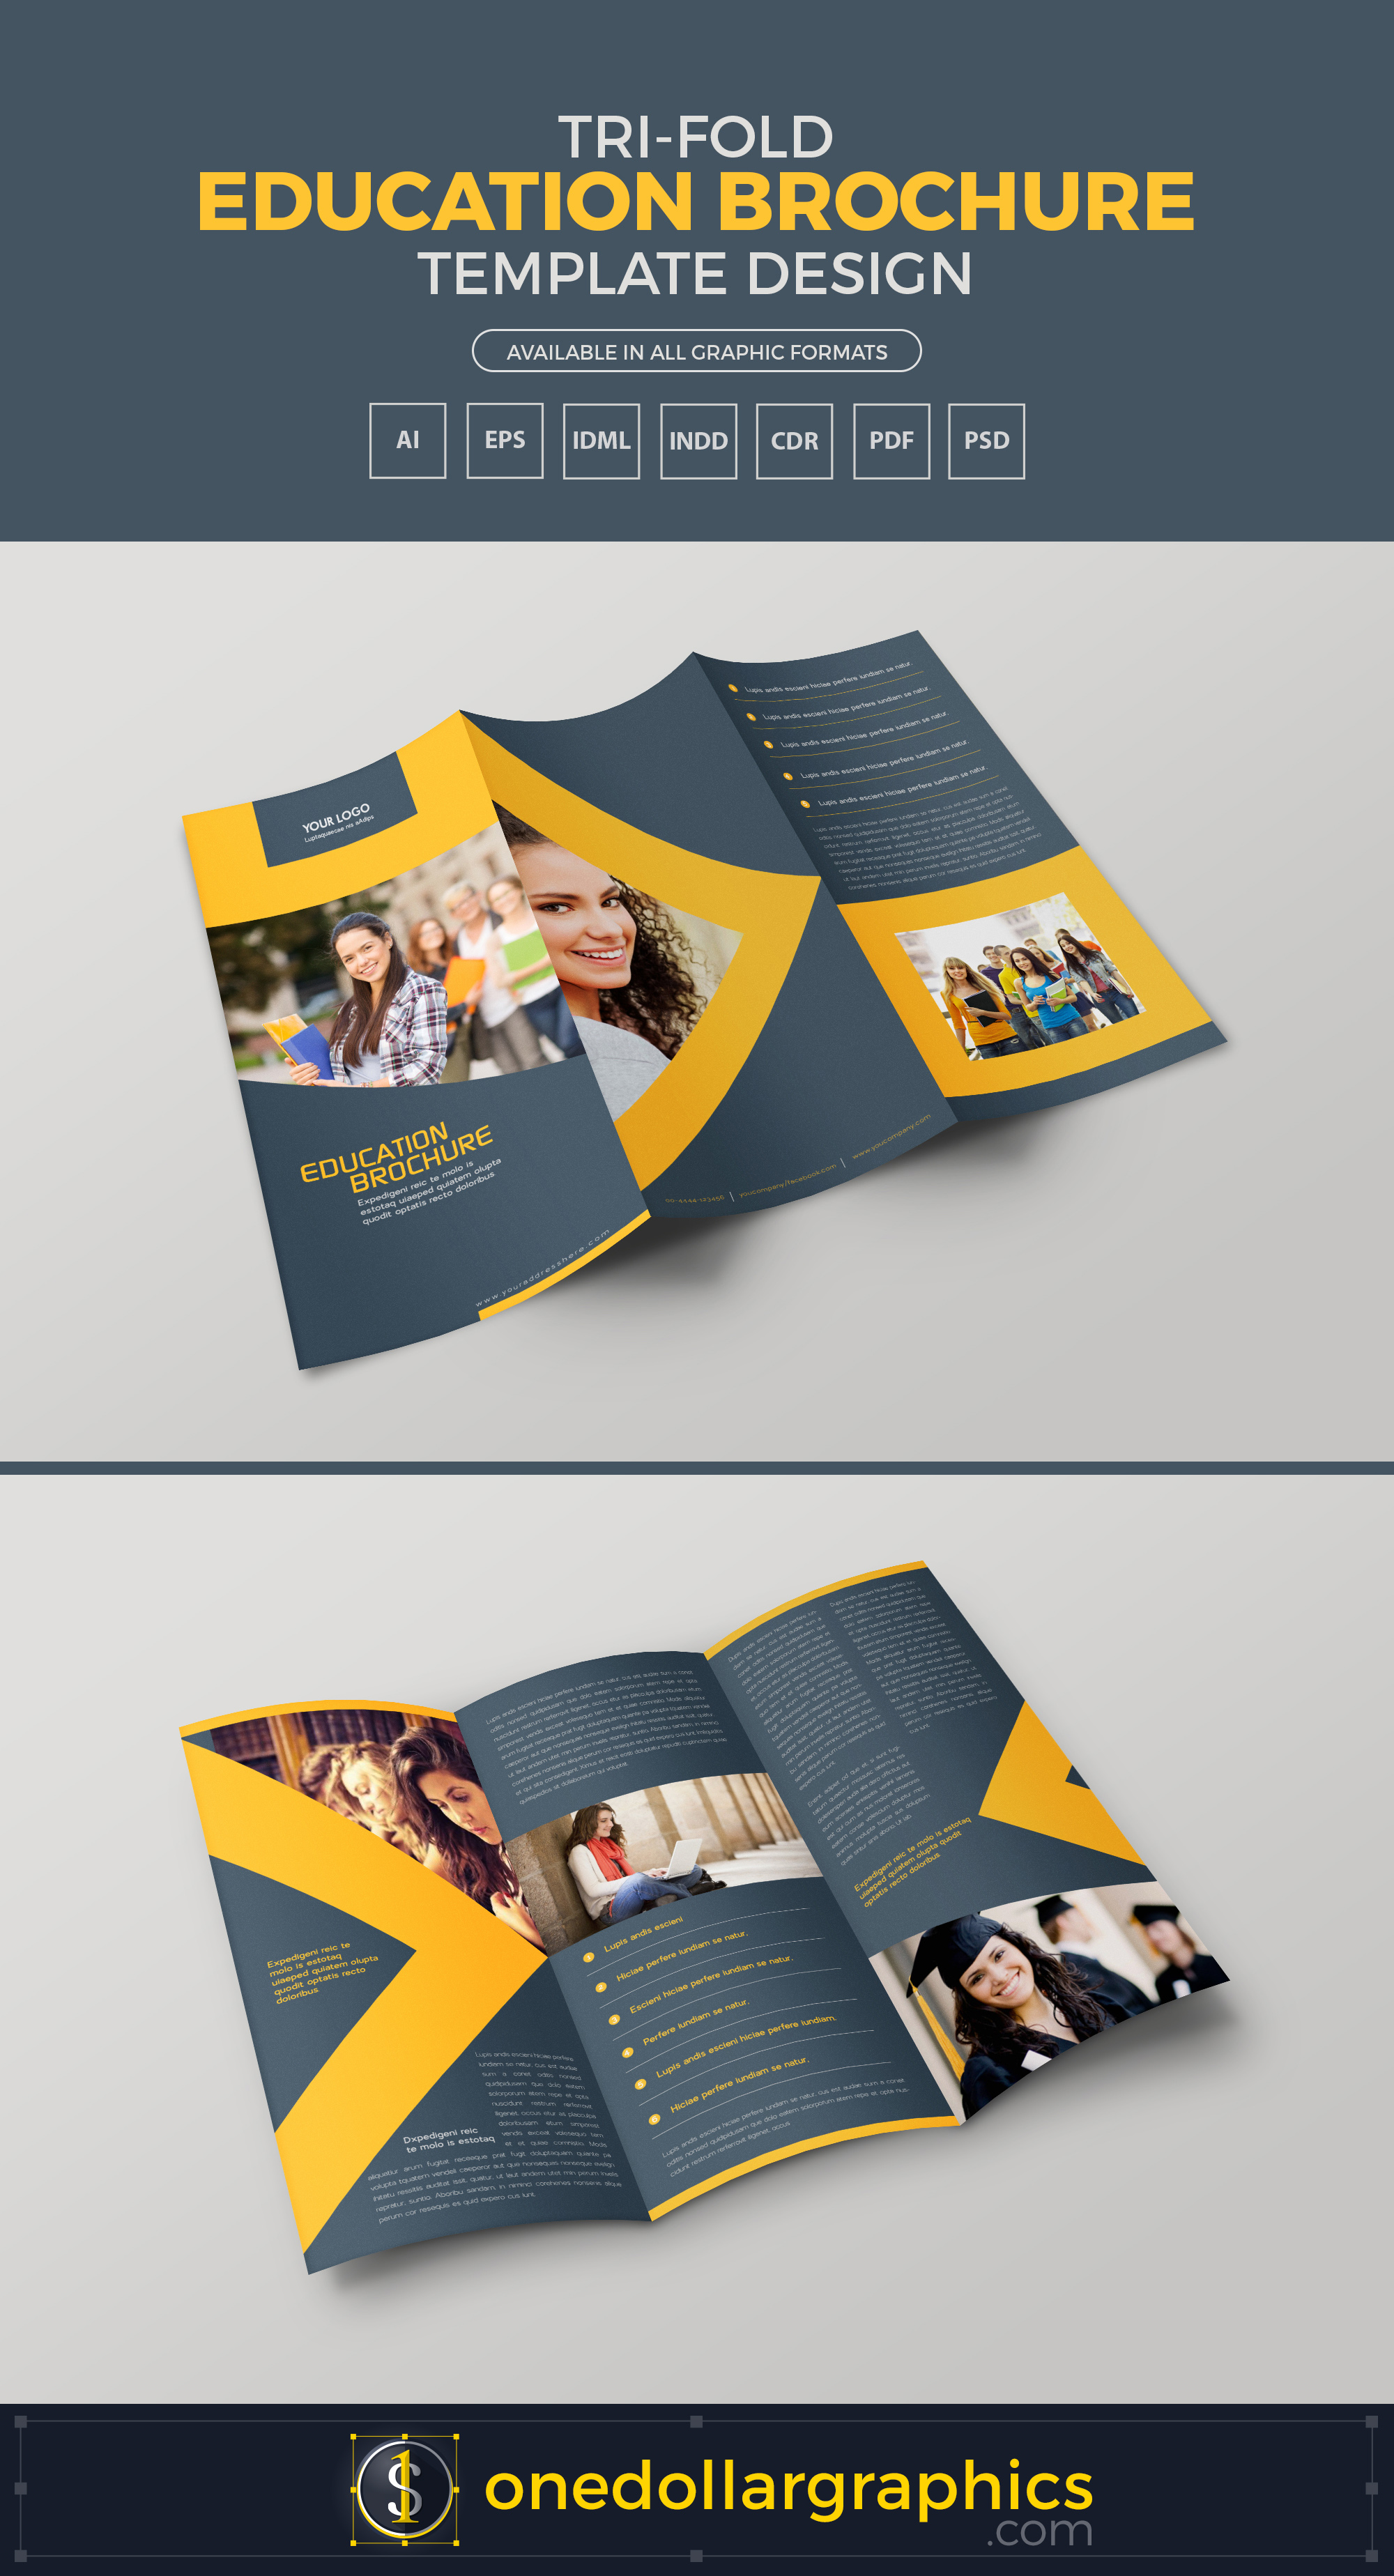 Tri fold education brochure template design in ai eps for Tri fold school brochure template